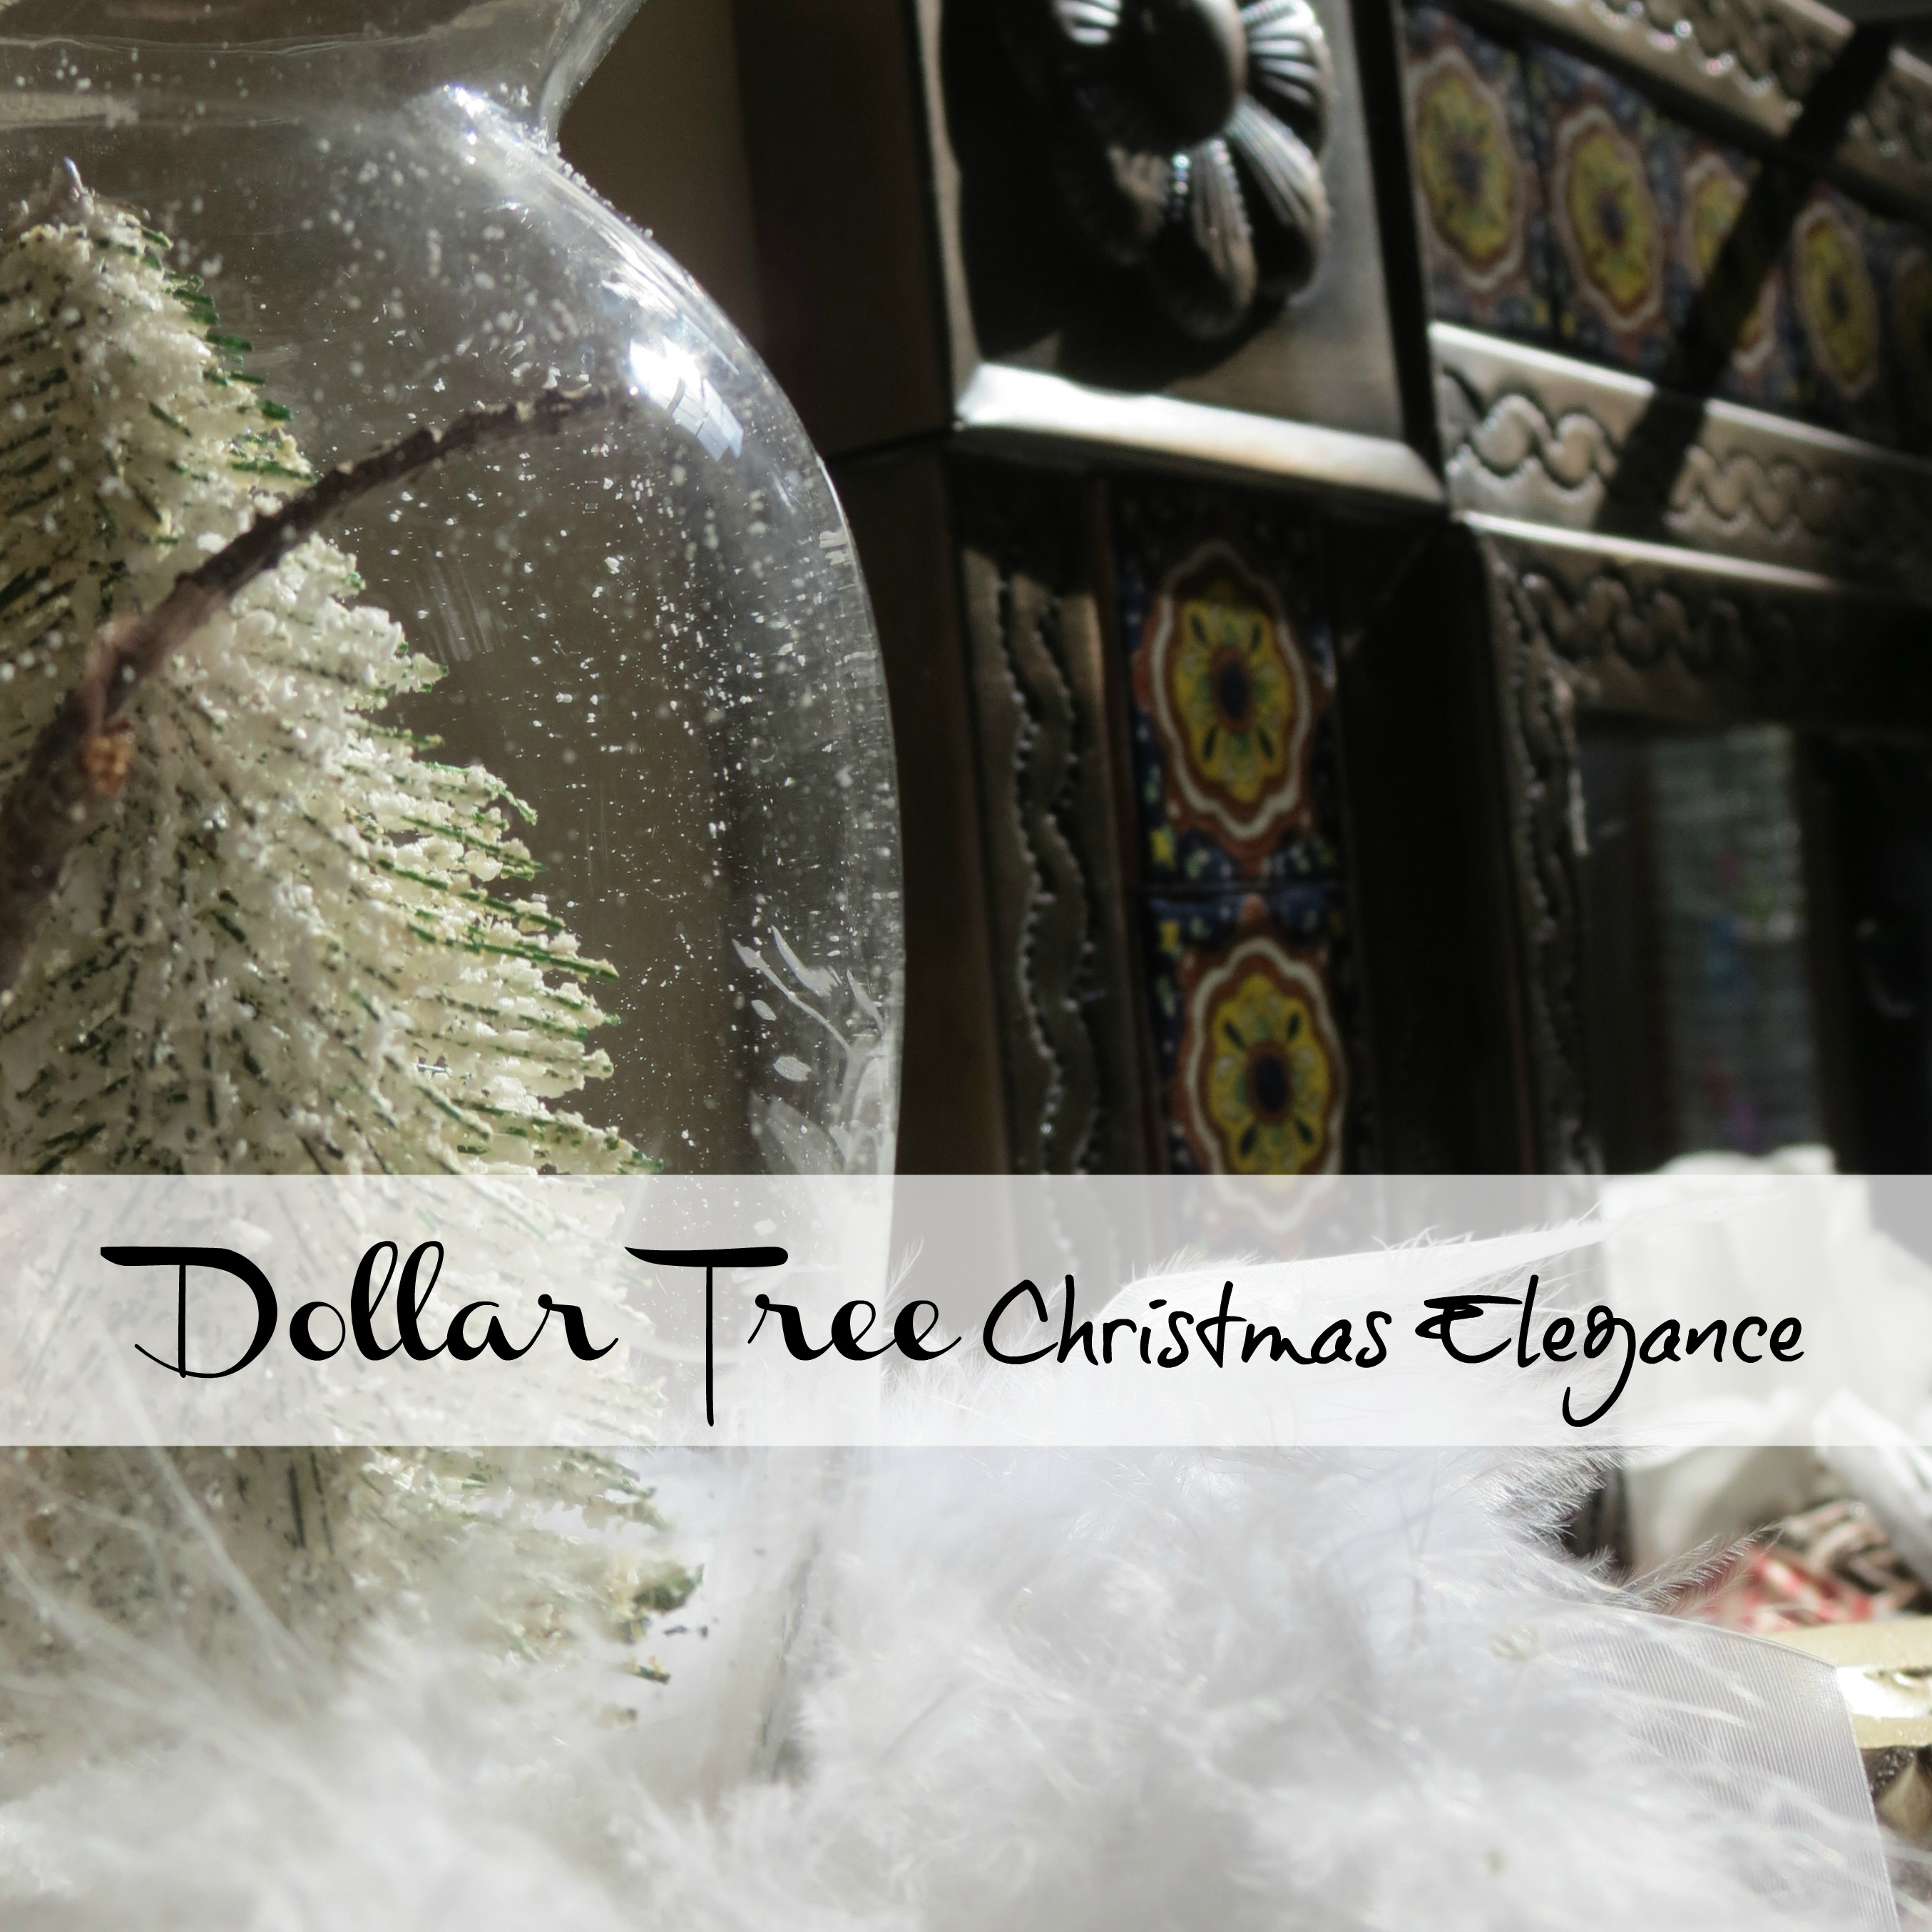 Dollar Tree Christmas Decor And Gift Ideas: Dollar Tree Christmas Craft And Decor Ideas